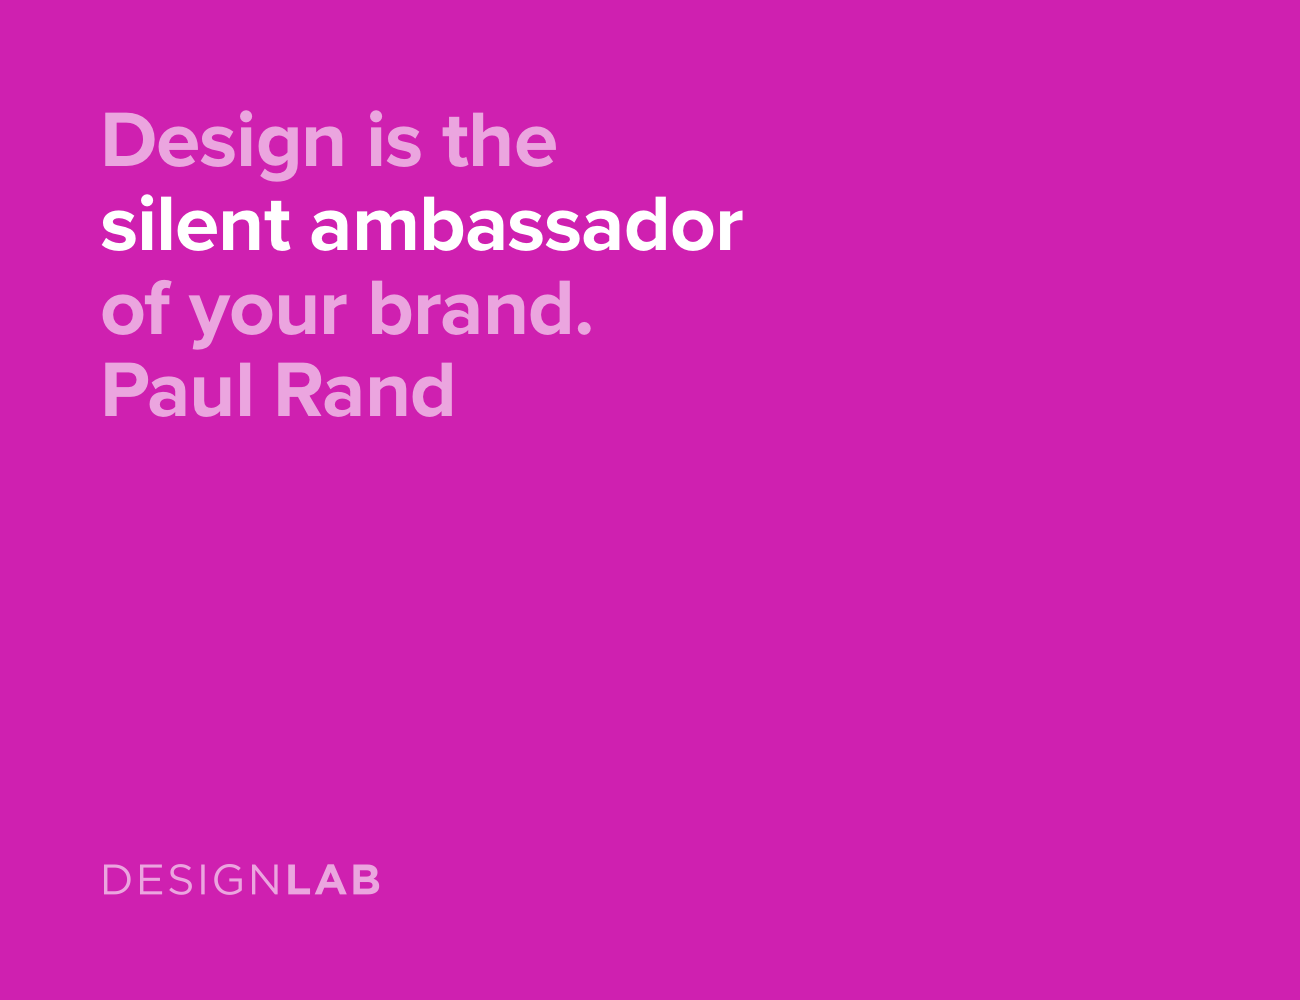 Design is the silent ambassador of your brand. Paul Rand